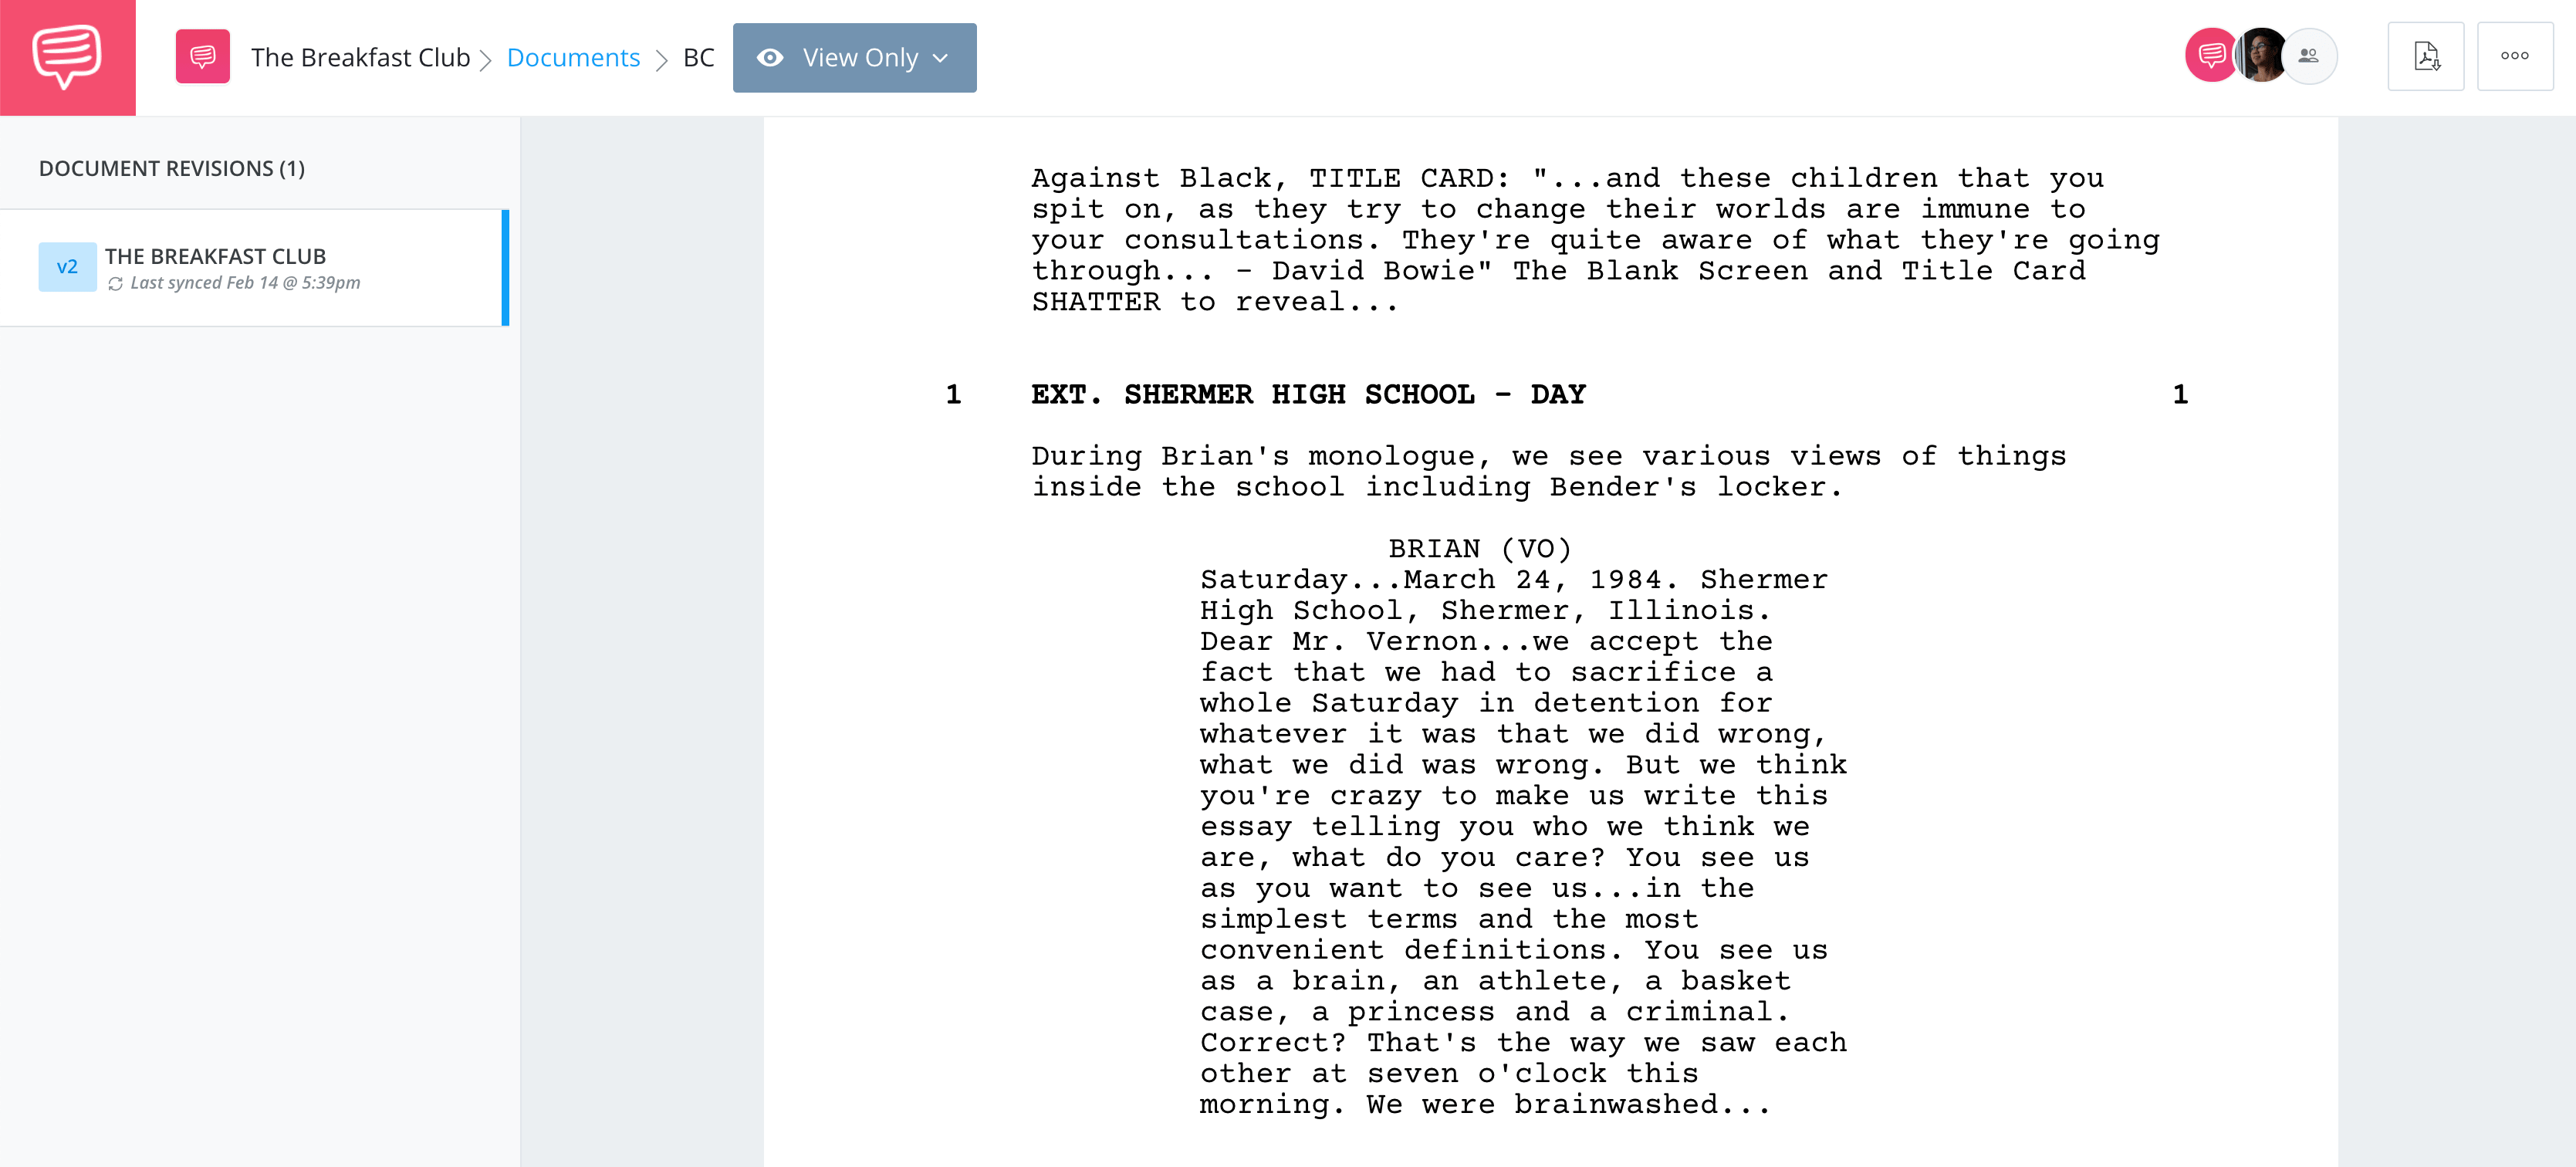 The Breakfast Club Script Screenplay - Complete Script - StudioBinder